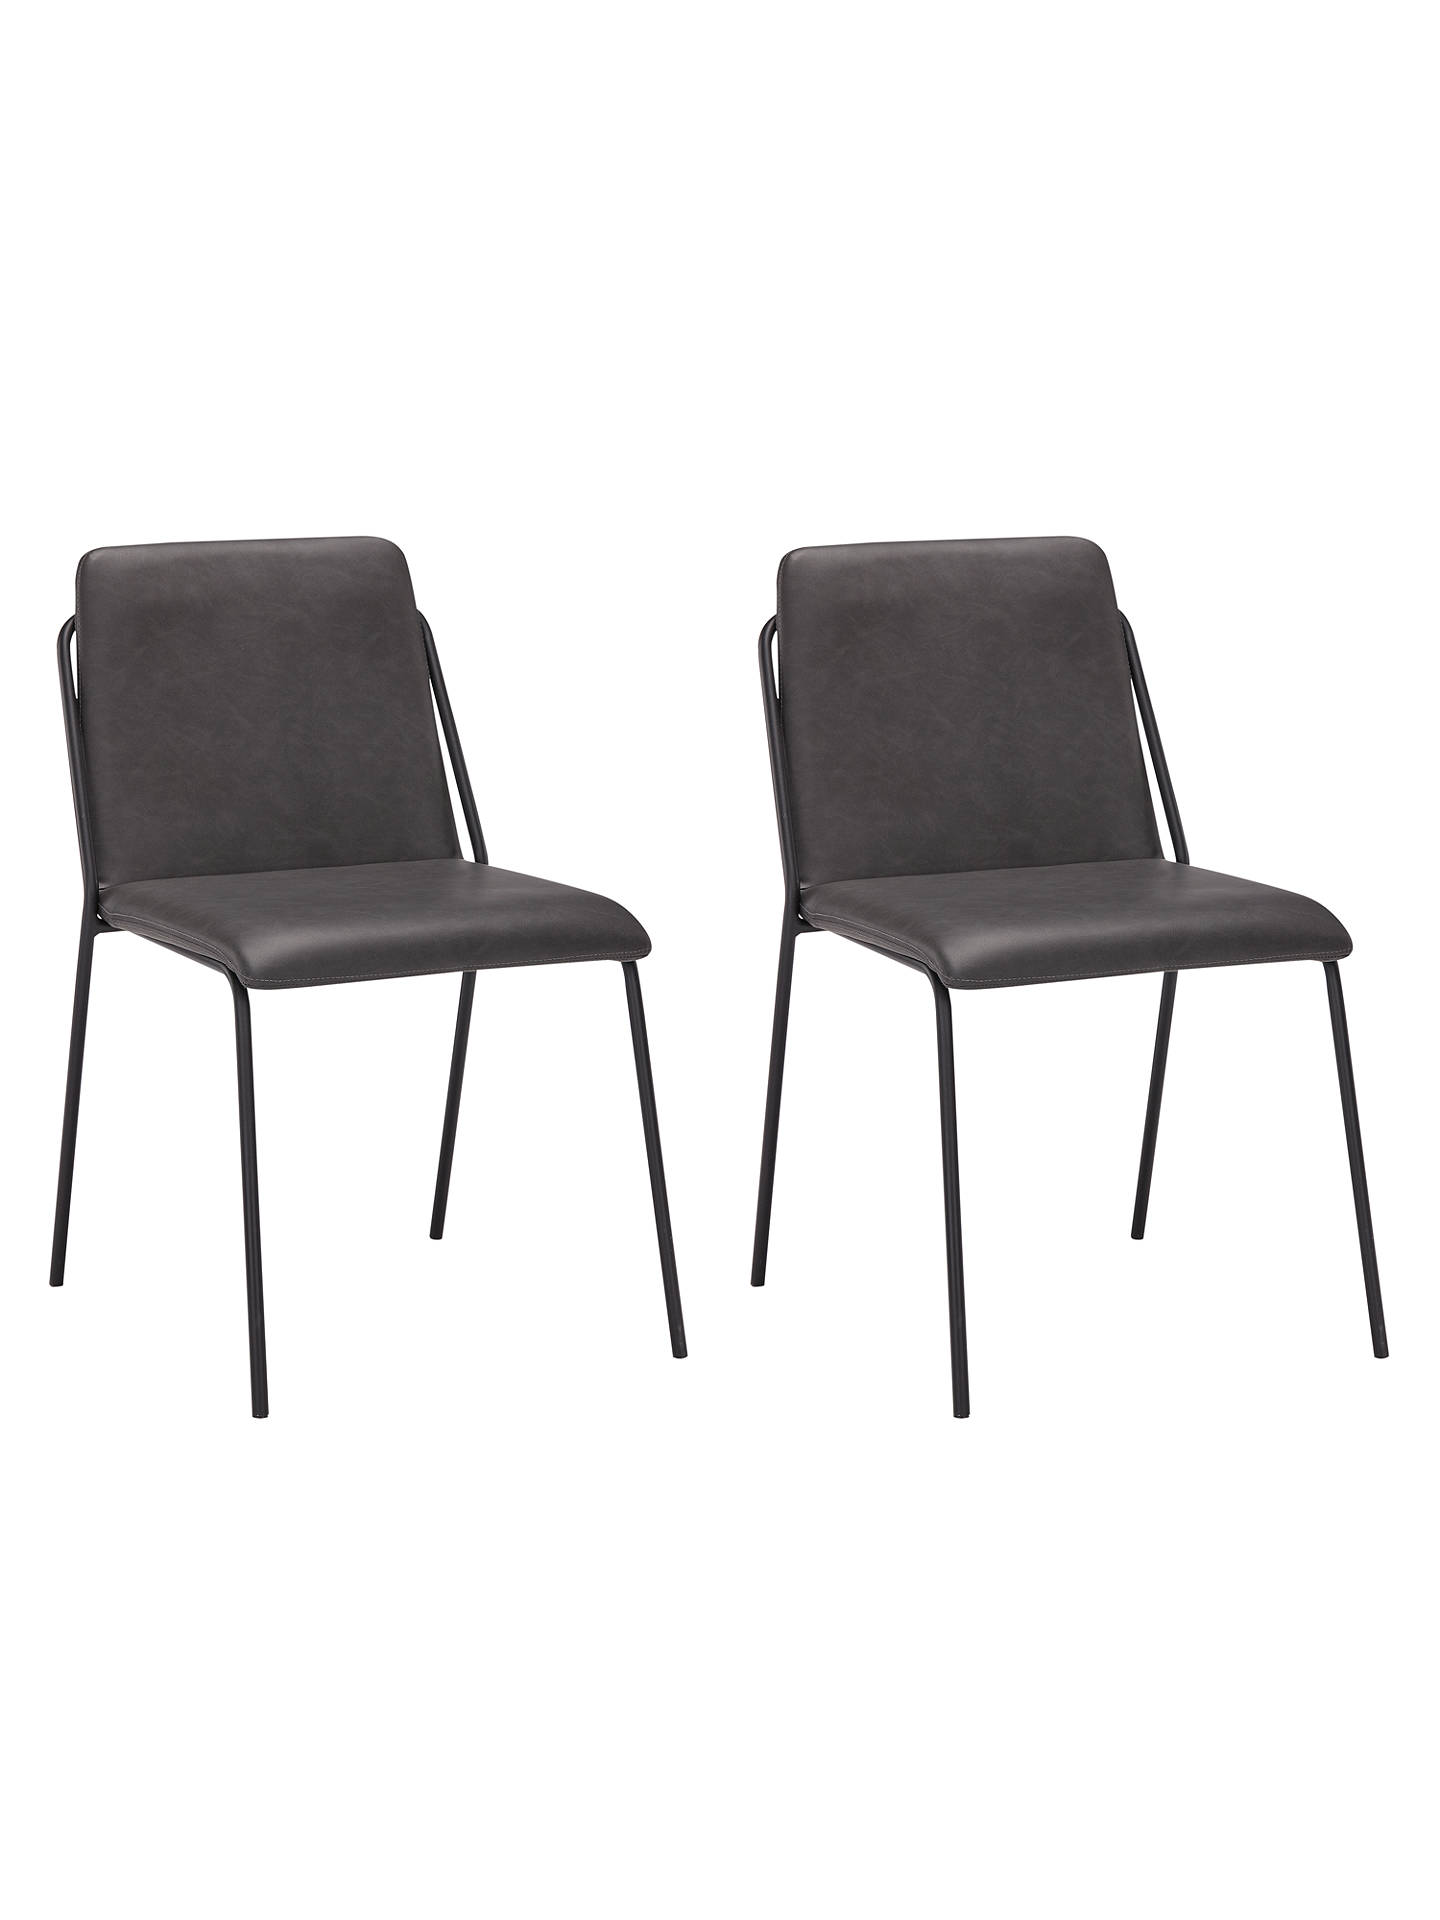 John Lewis Amp Partners Rimini Dining Chairs Set Of 2 Dark